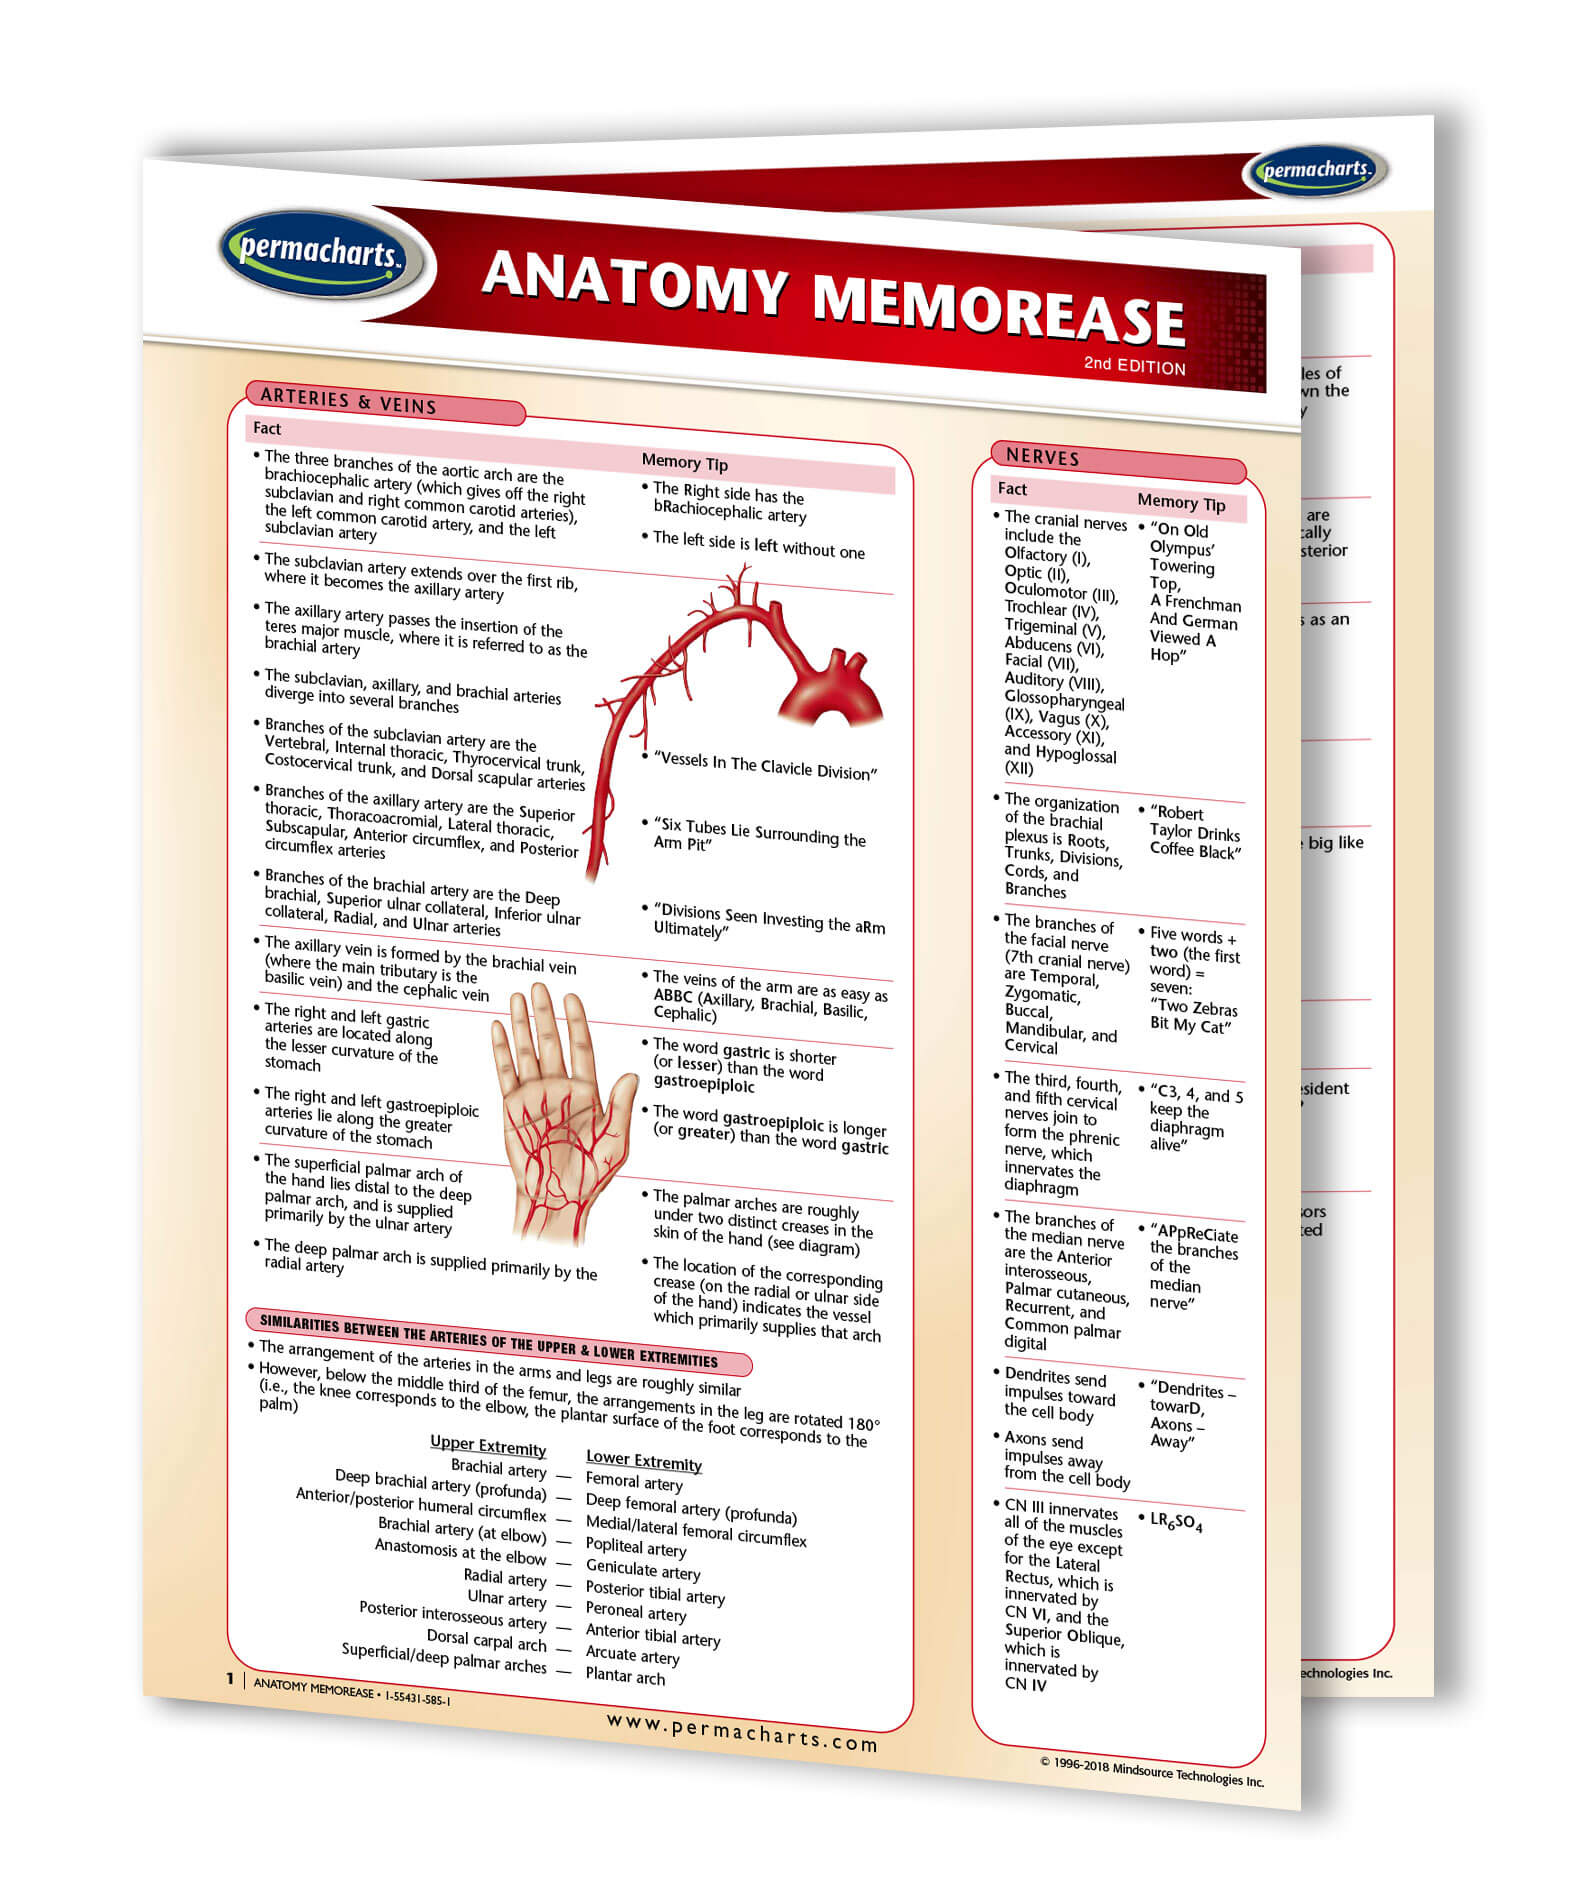 Anatomy Memory Aids - Nursing Reference Quick Reference Guide